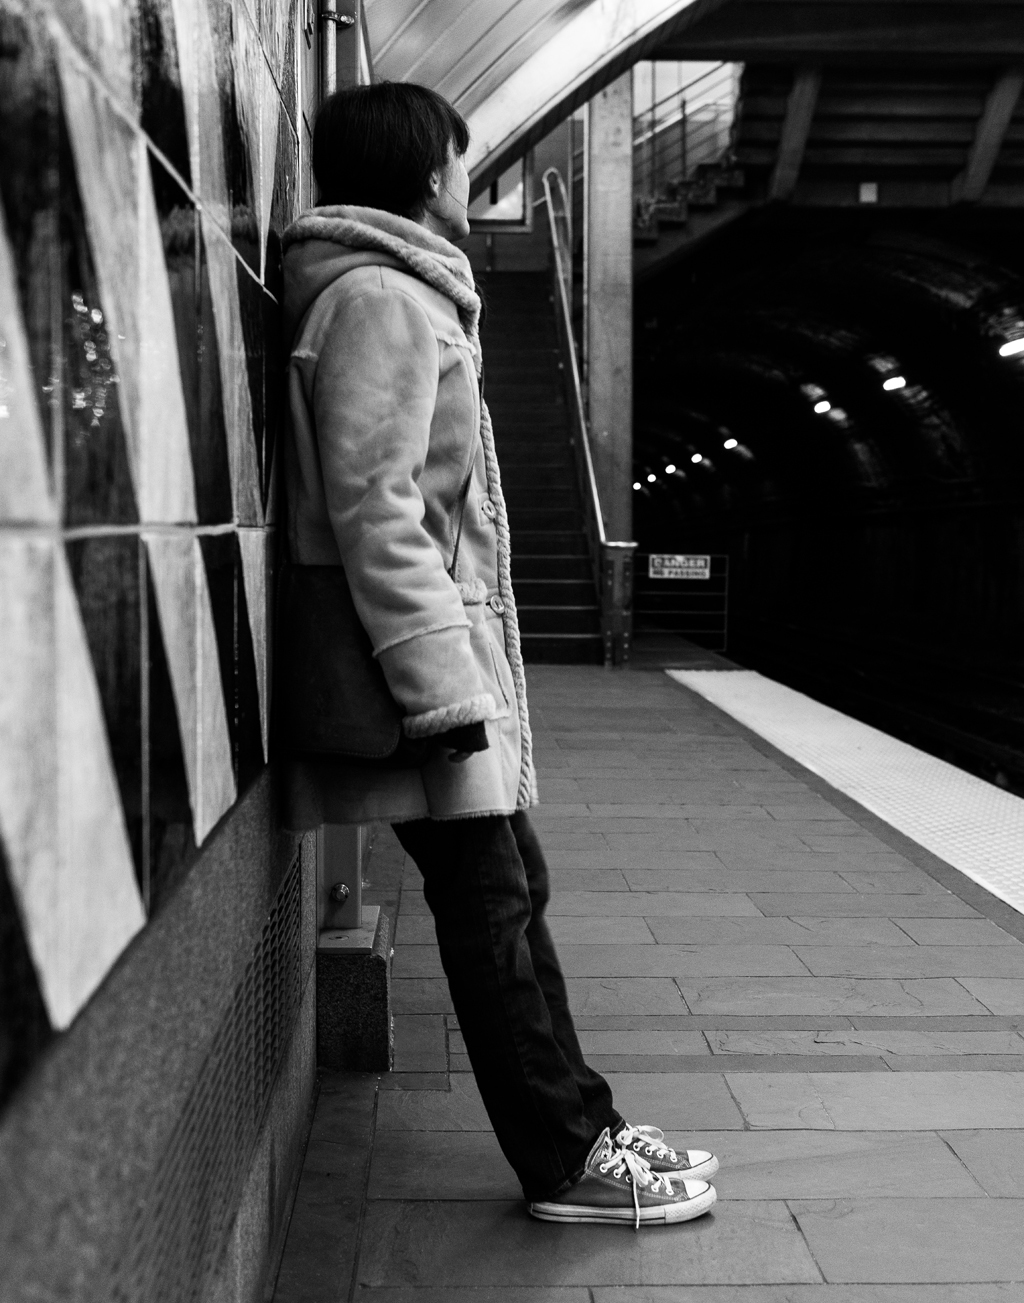 Waiting on the T